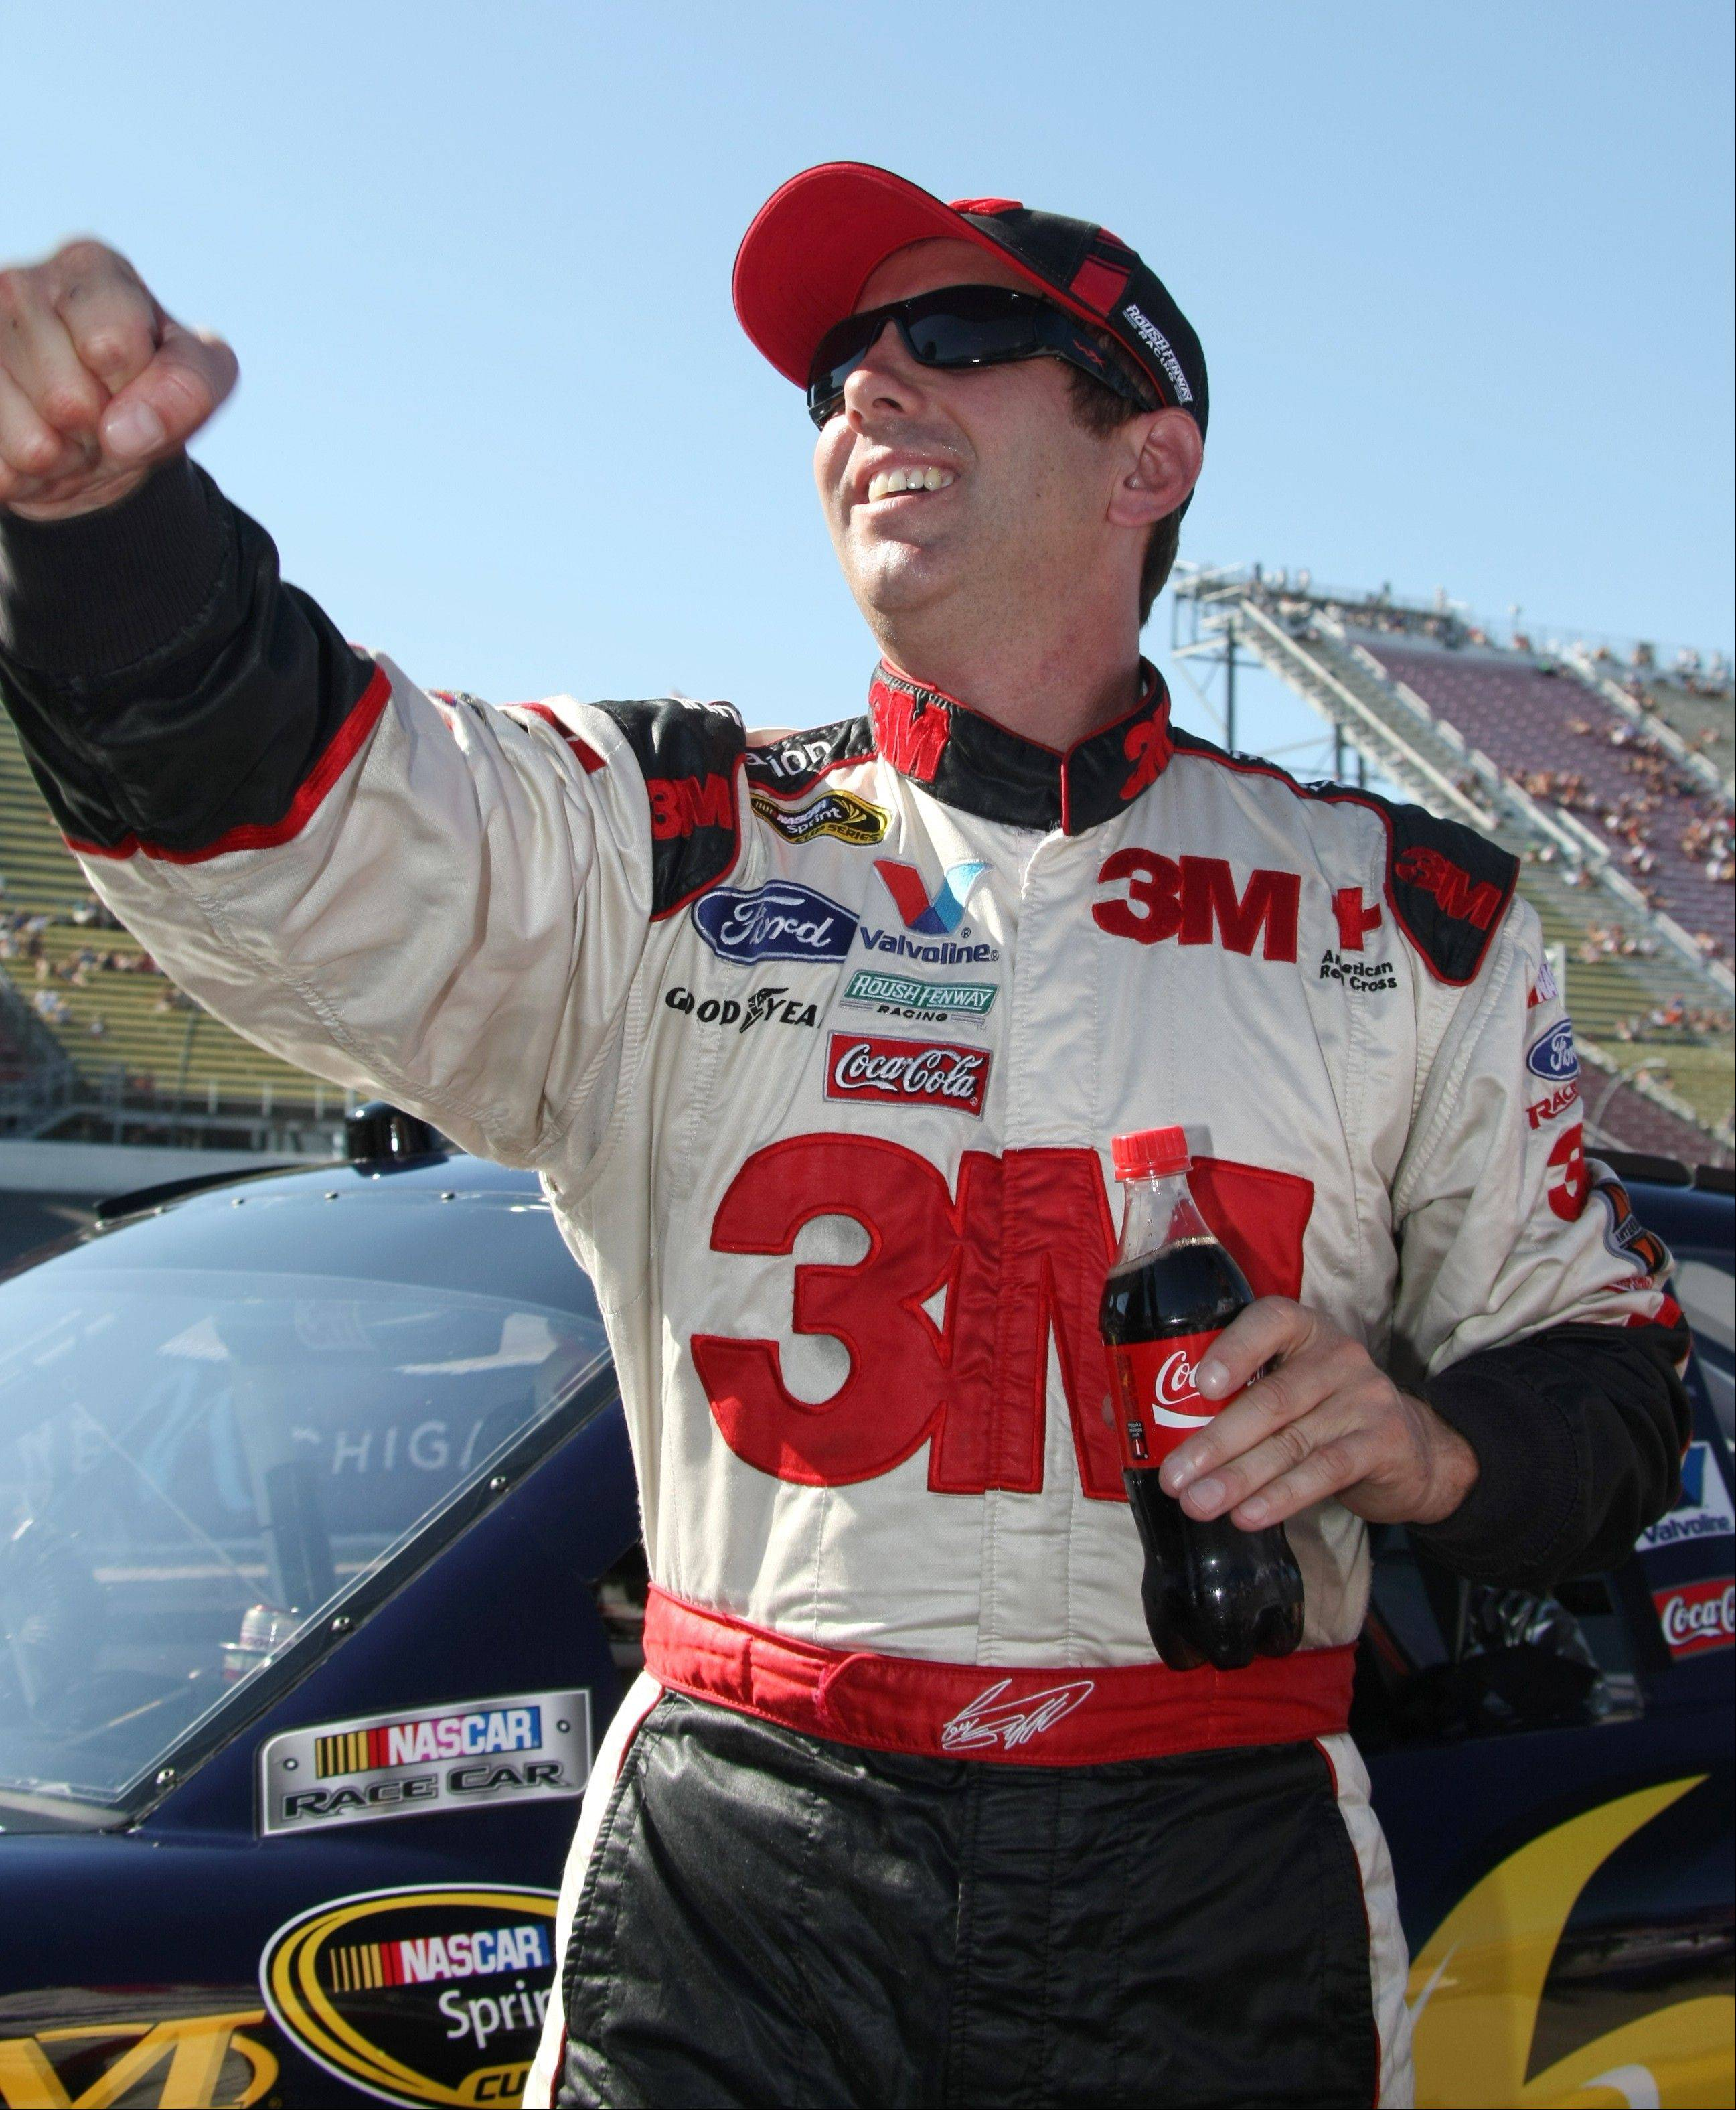 Greg Biffle posted a qualifying lap of 190.345 miles per hour for his first pole since June 2008.